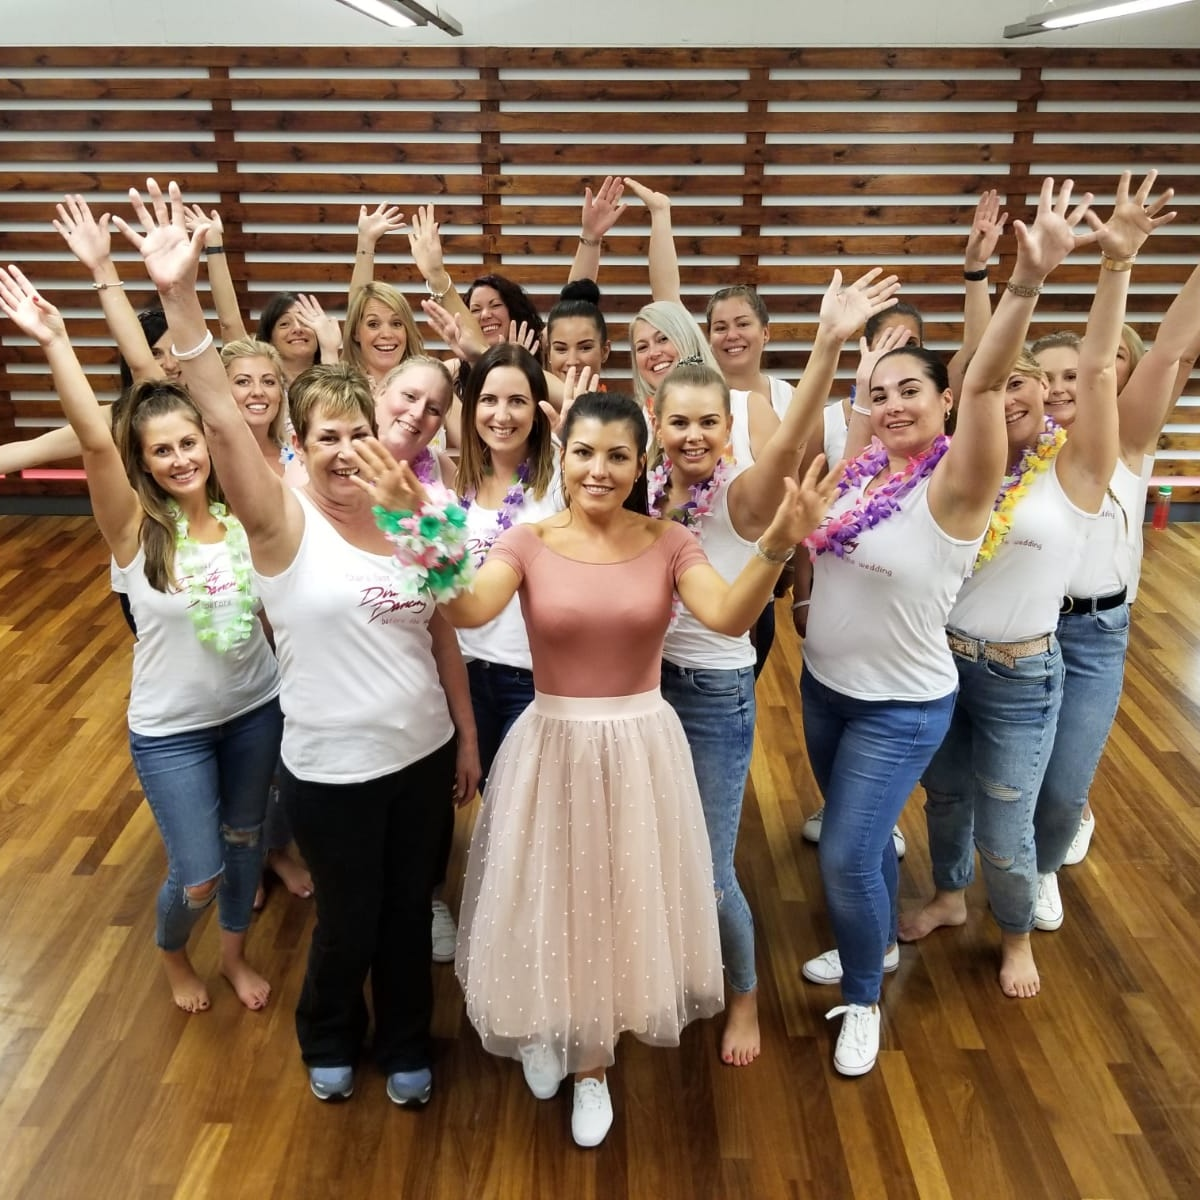 Dirty Dancing Hen party dance class - Dance Party Experience